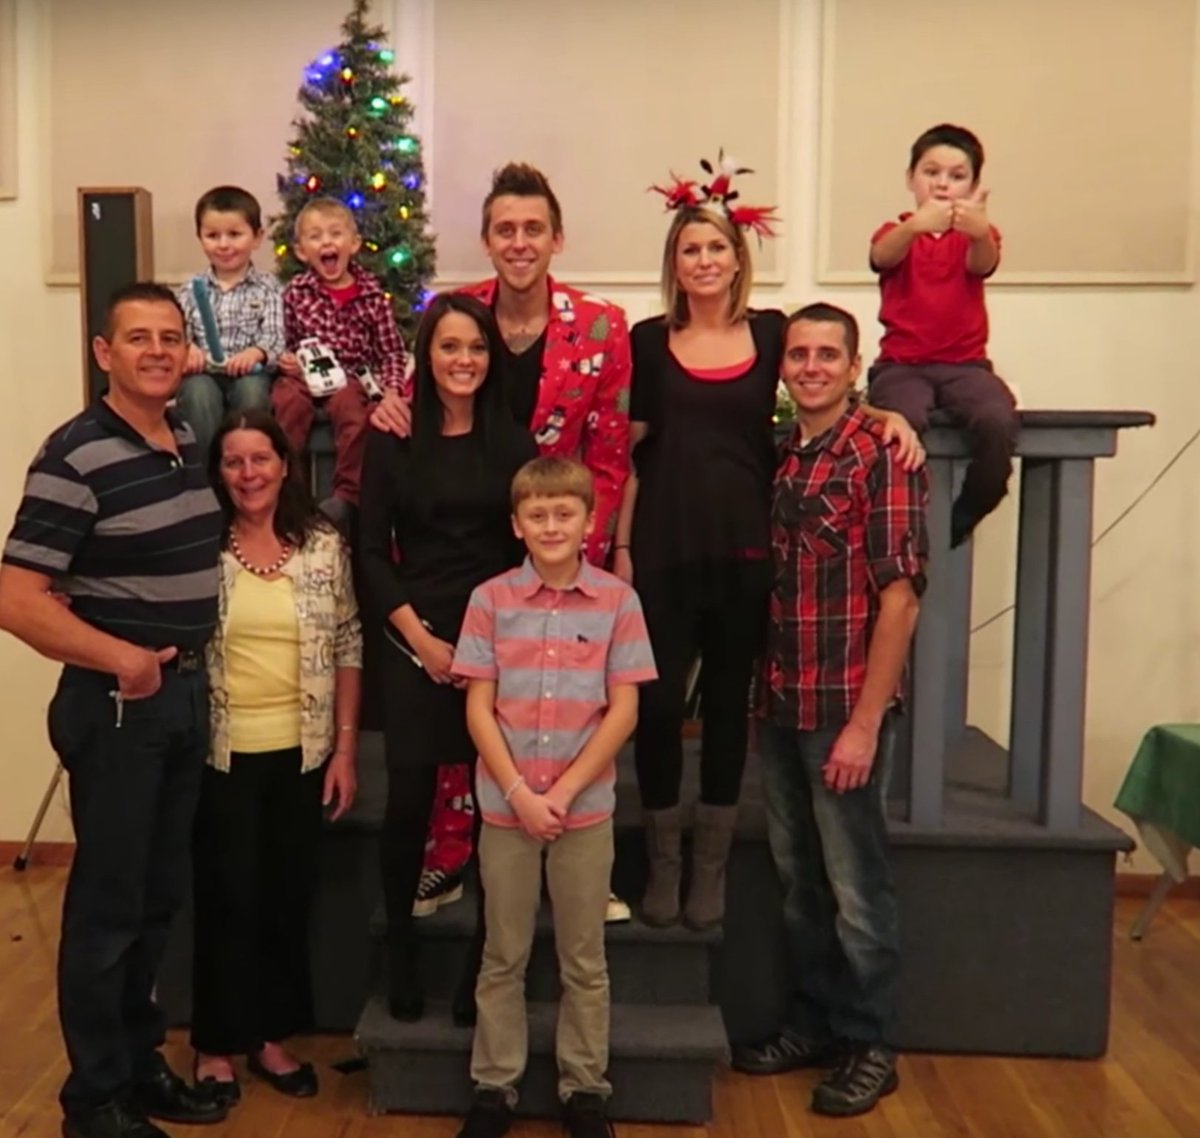 Roman Atwood Story On Twitter Christmas Family Picture RomanAtwood DaleAtwood BrittneySmith Like Ohio Holiday Following